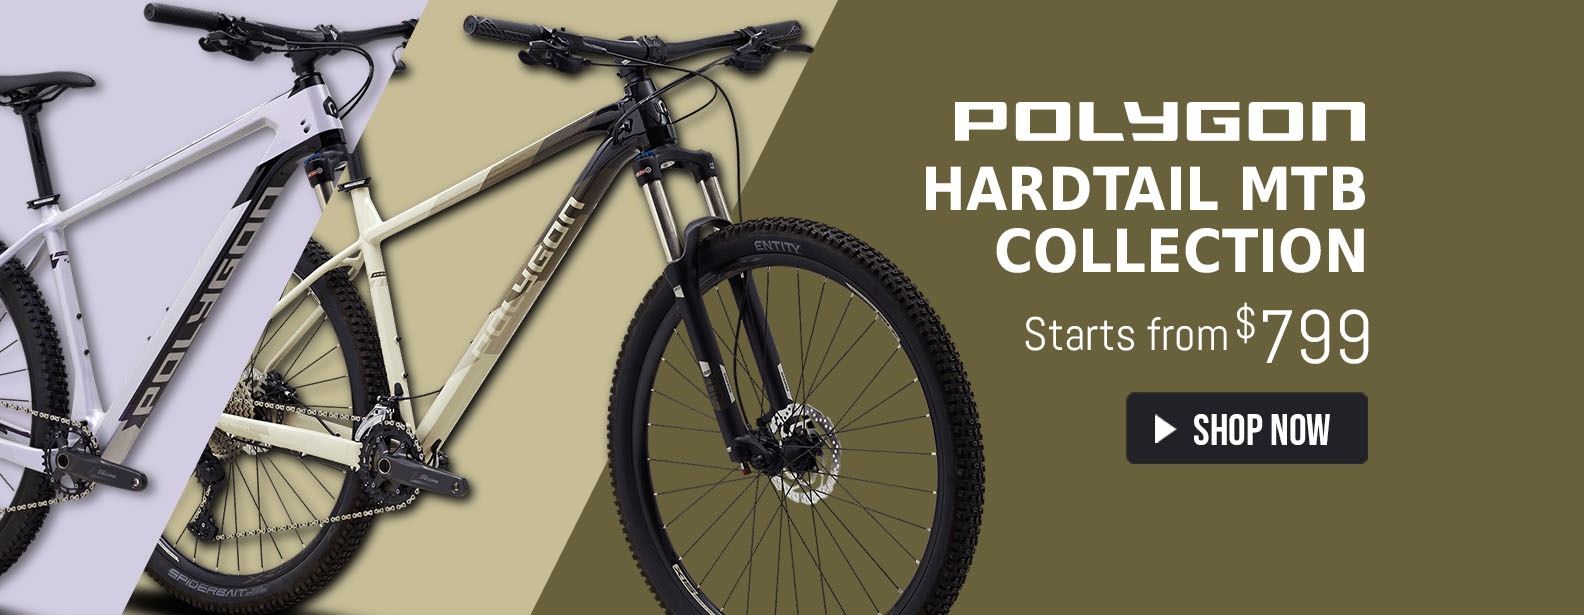 Buy Hardtail MTB Collection